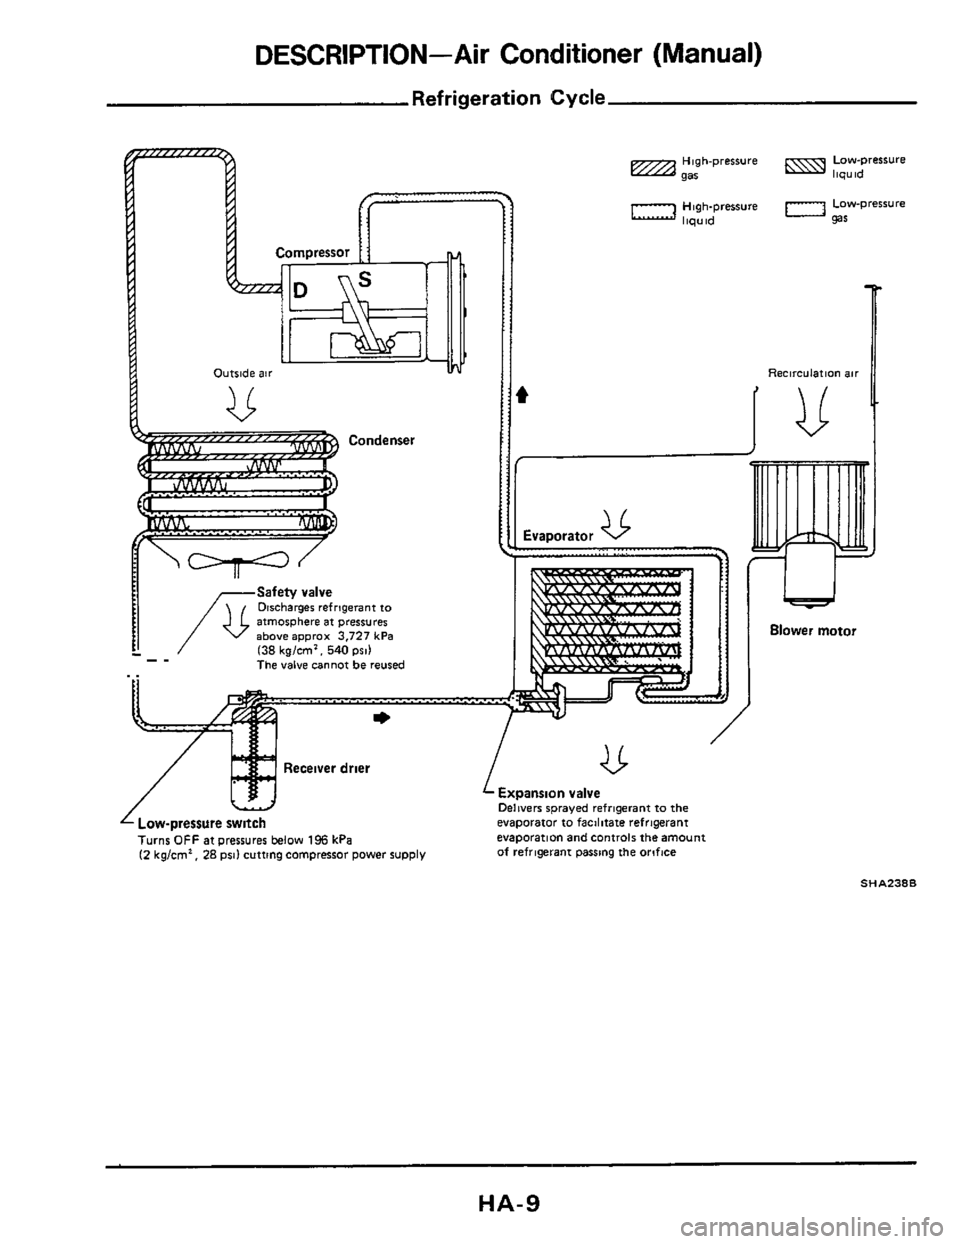 NISSAN 300ZX 1984 Z31 Heather And Air Conditioner Workshop Manual, Page 9